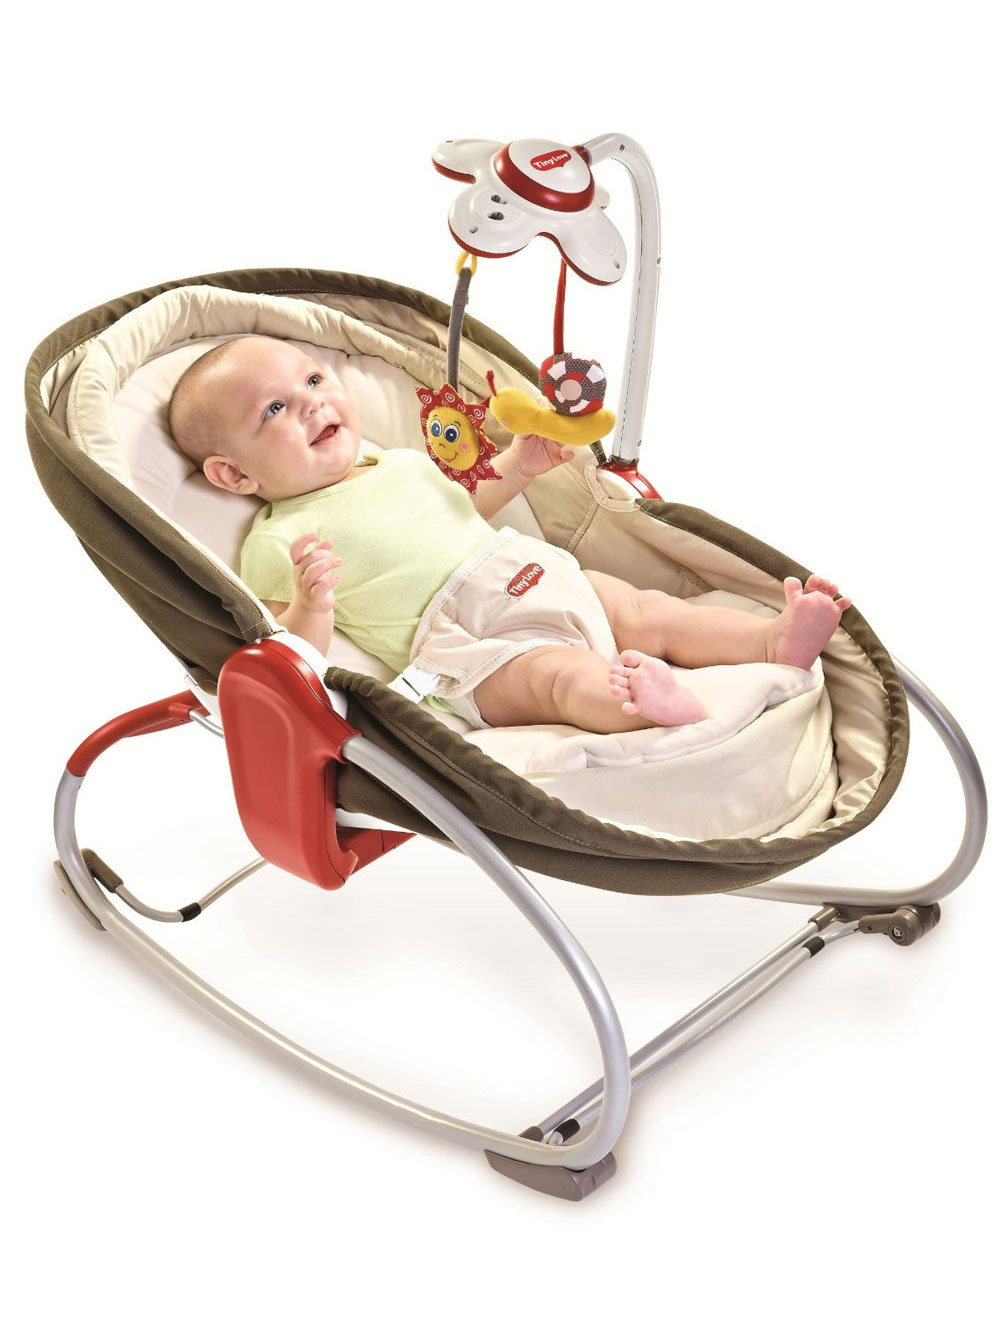 Tiny Love 3-in-1 Rocker Napper - brown, one size